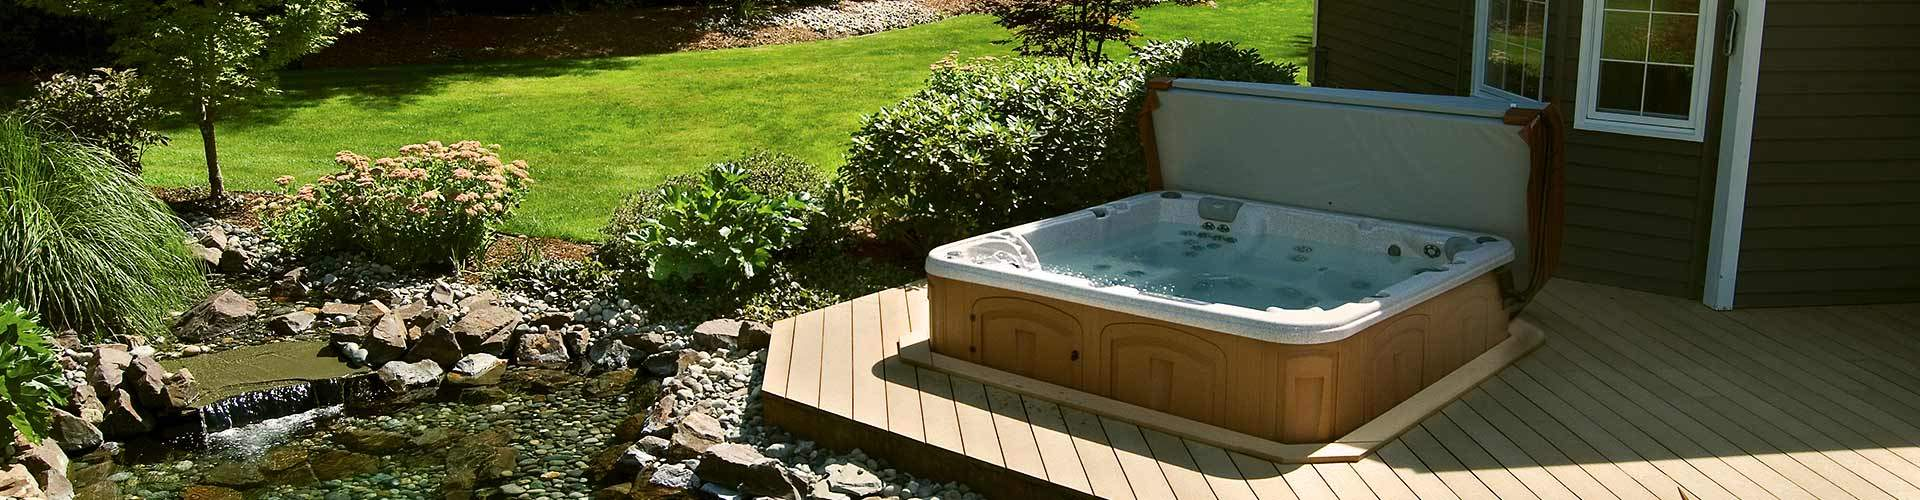 whirlpools world outdoor whirlpool